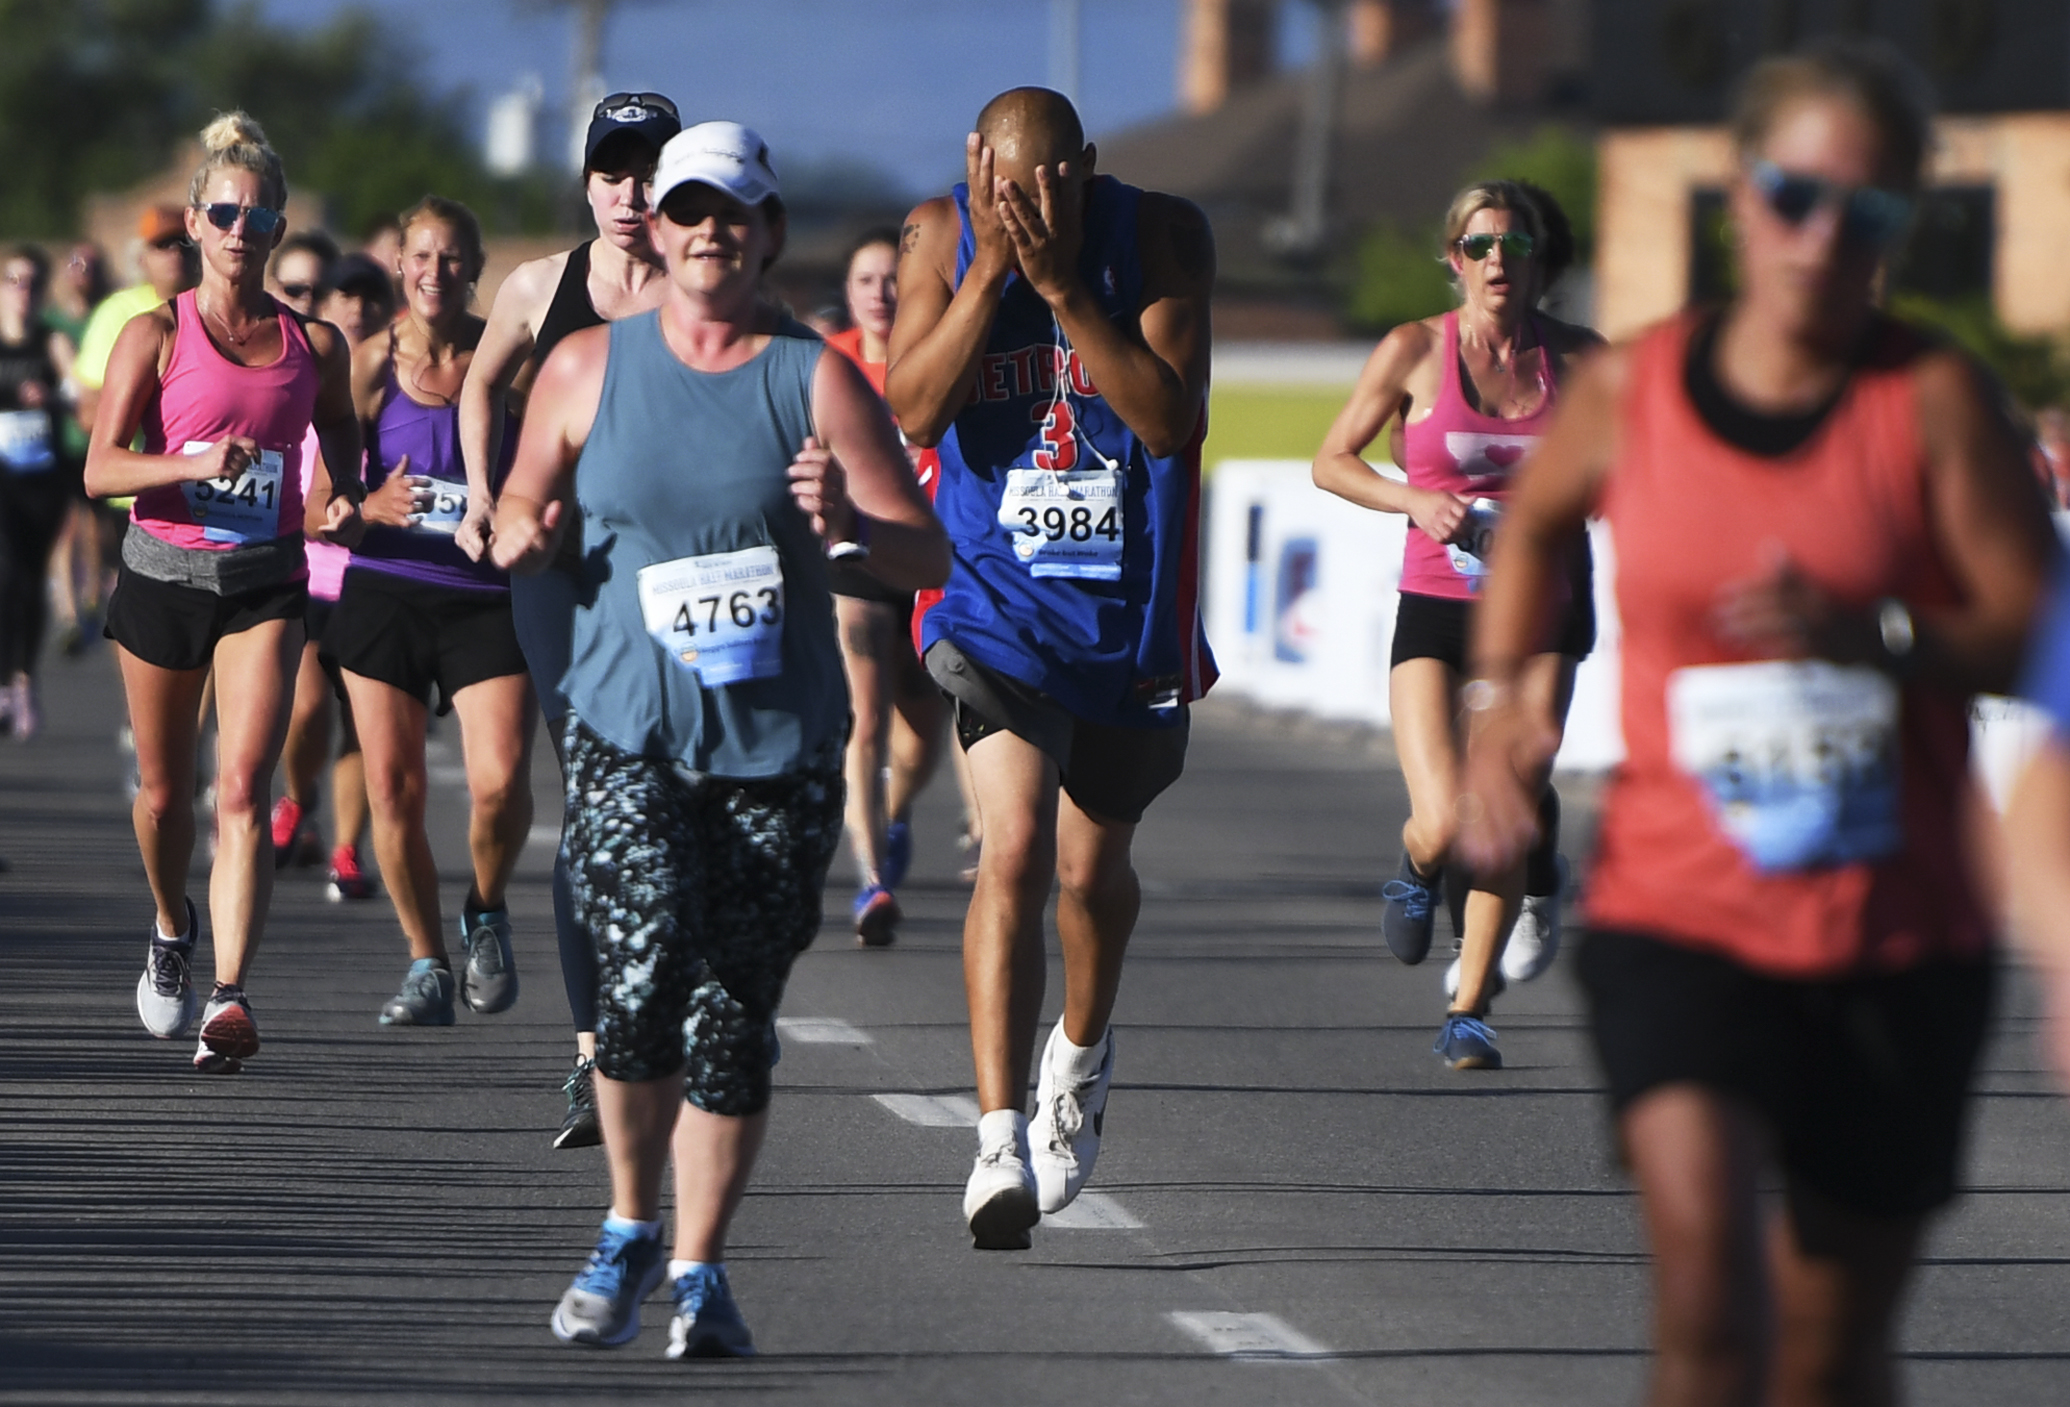 Davie Mizerek (3984), from Odesa, Wash., wipes the sweat from his face as he approaches the finish line for the half marathon on the Higgins Street bridge.